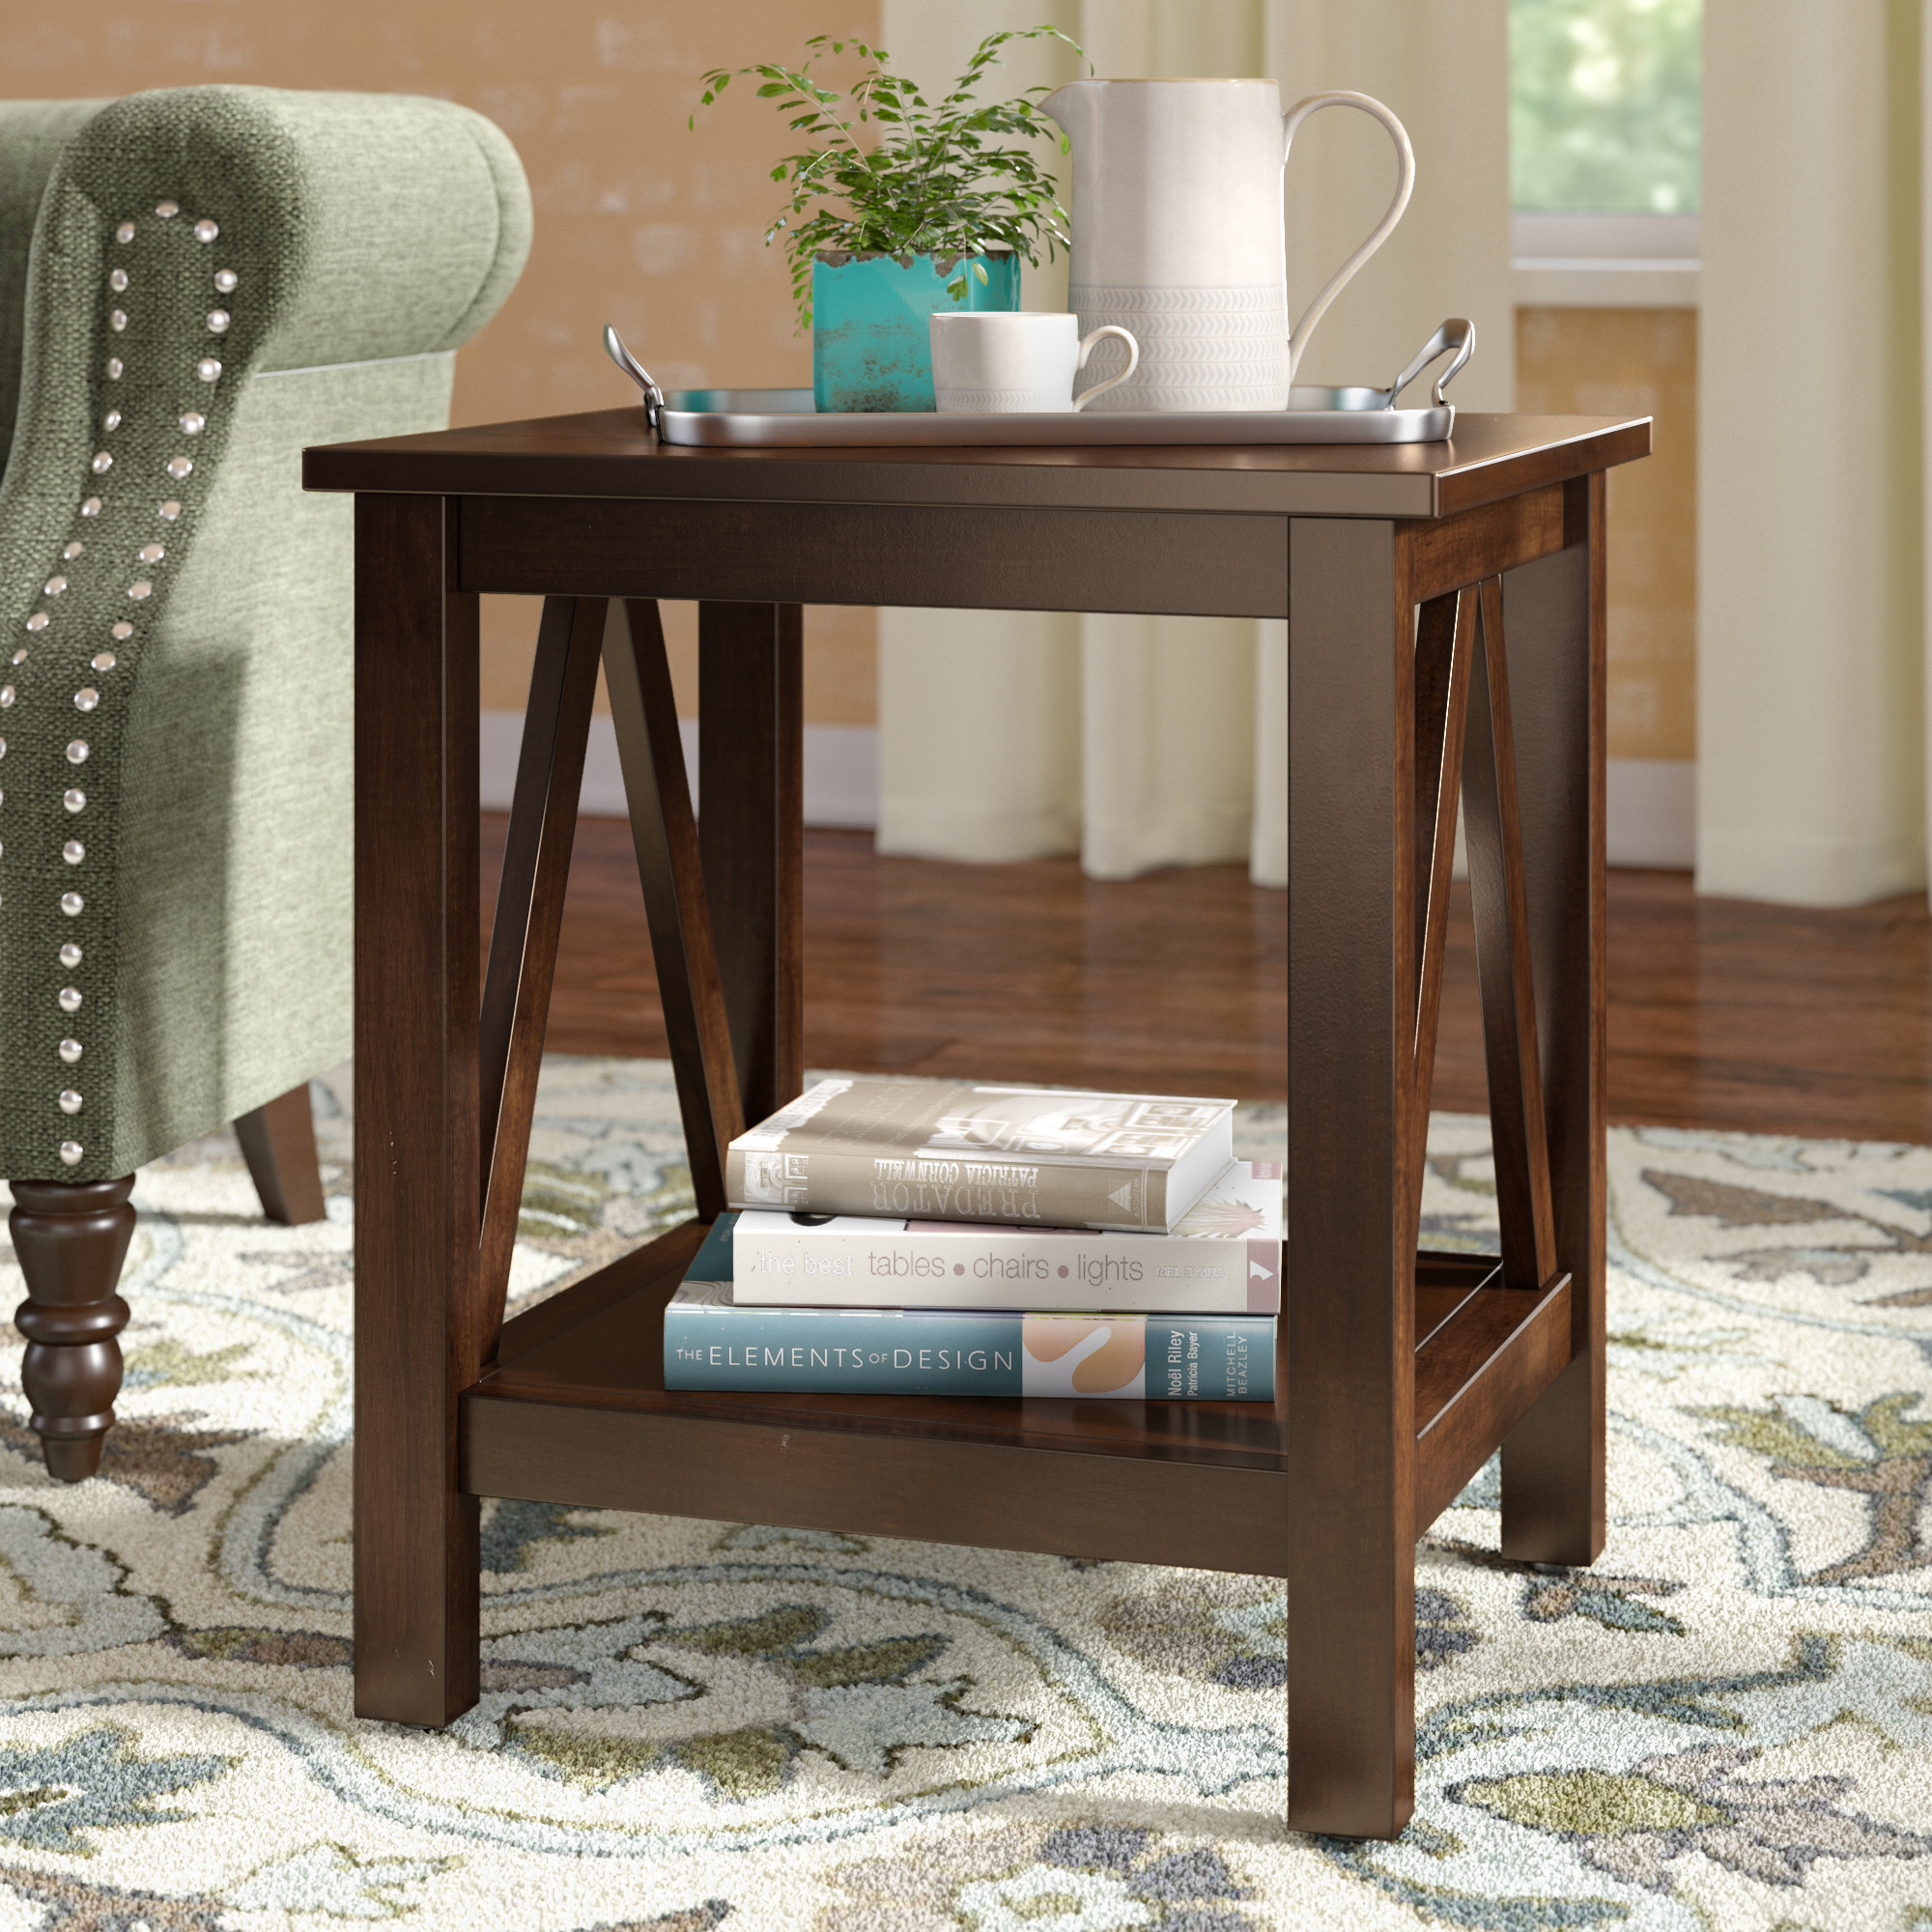 wicker basket end table brassiewood storage accent kitchen with side units for living room hampton bay spring haven contemporary bedroom furniture bar type dining target smoked